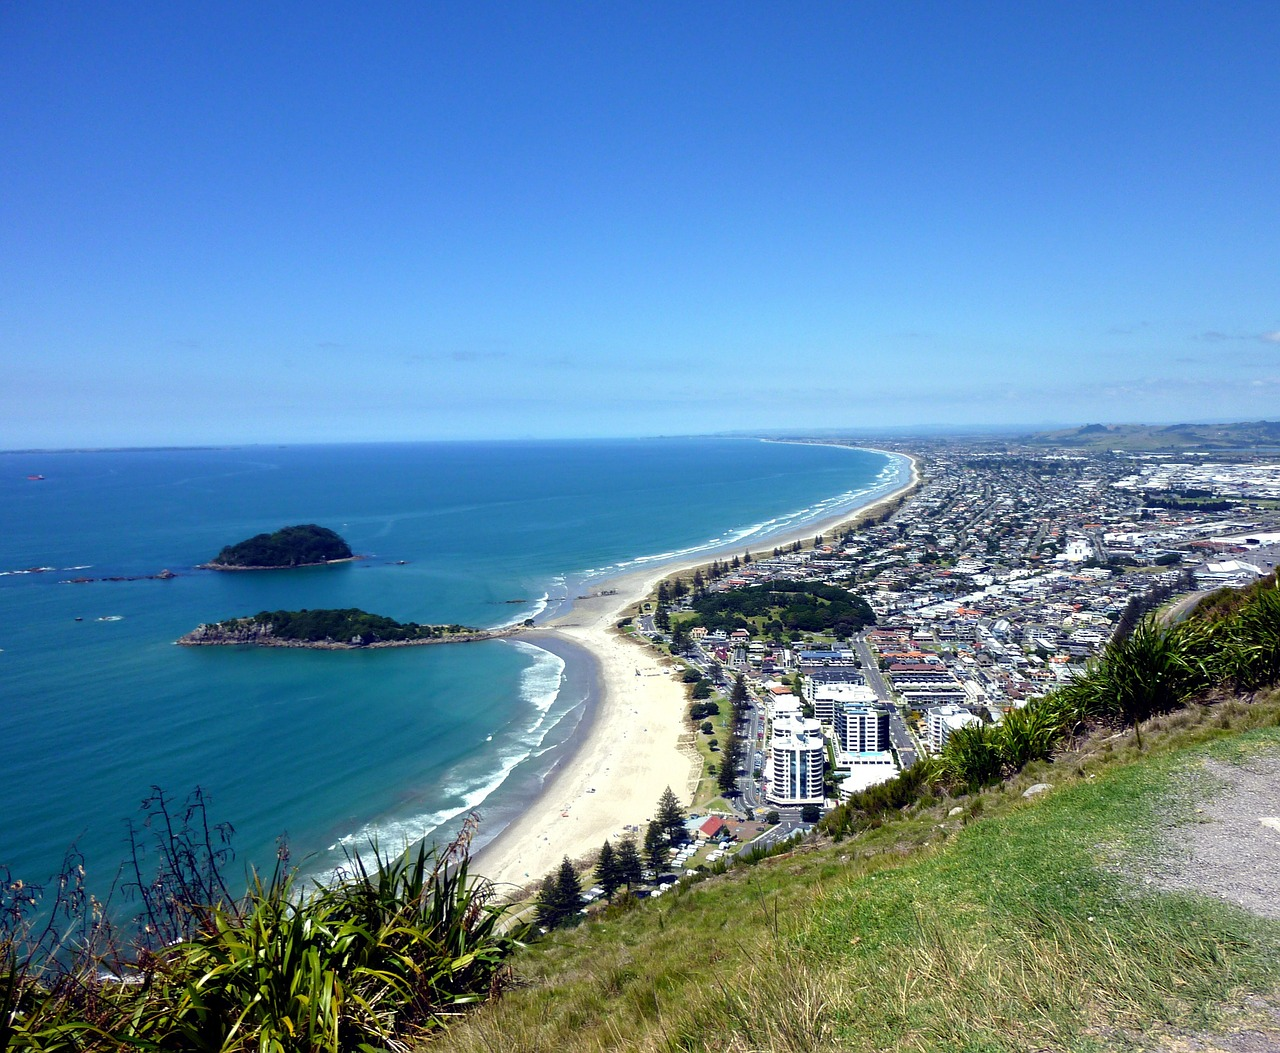 View of Maunganui beach, and Moturiki and Motuotau Islands from the top of Mount Maunganui on a calm day.